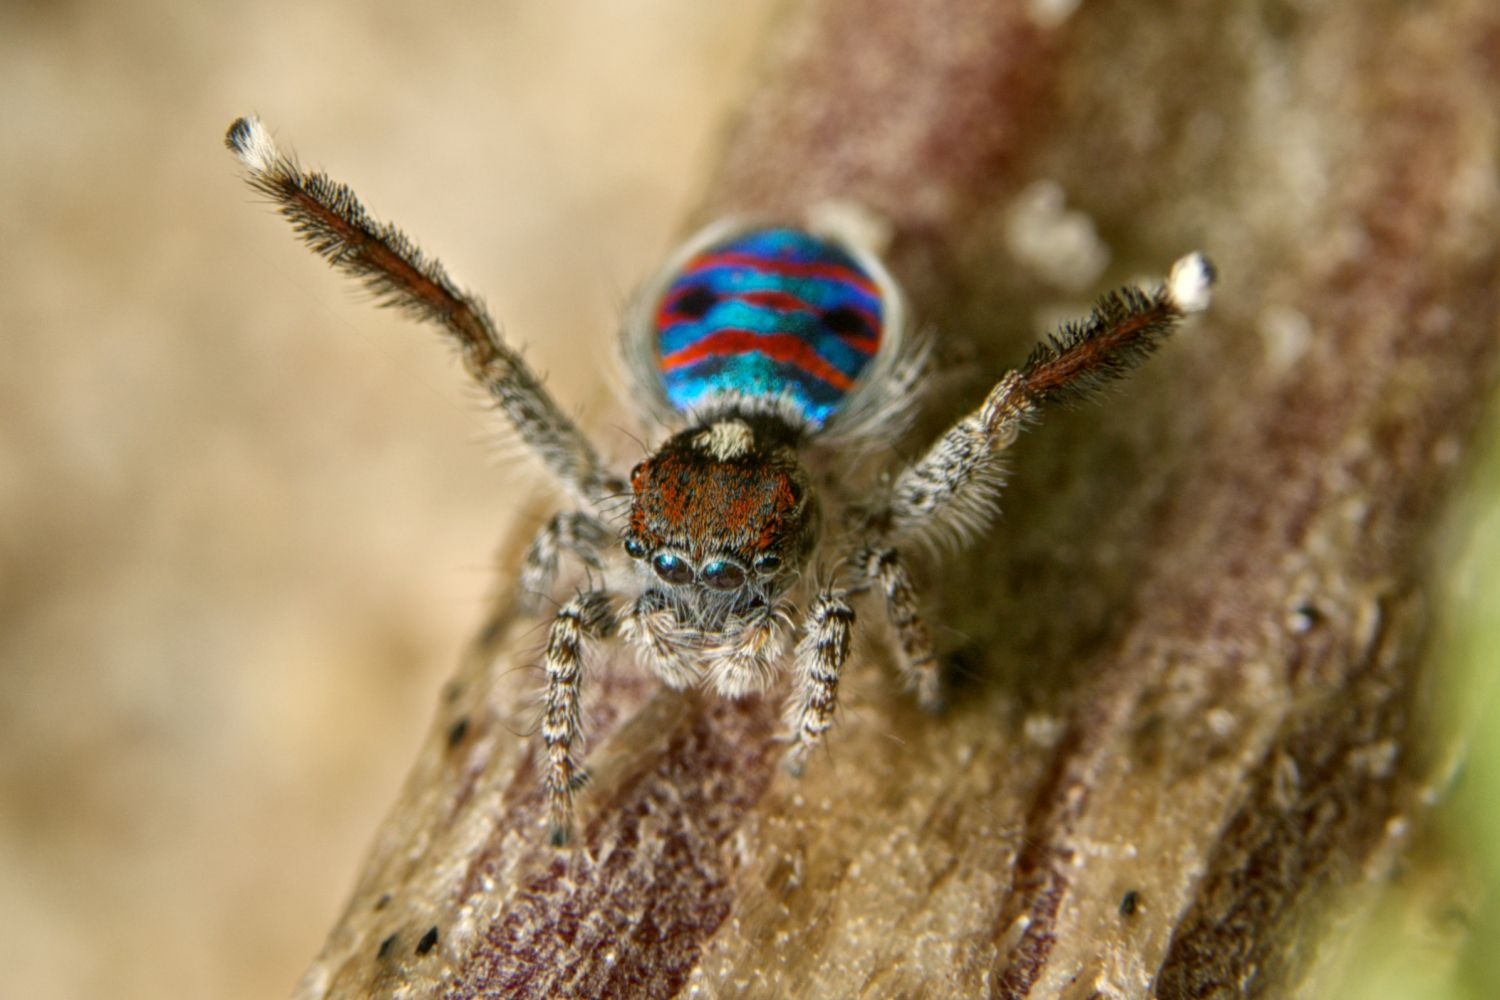 fuzzy peacock Spider on tree branch